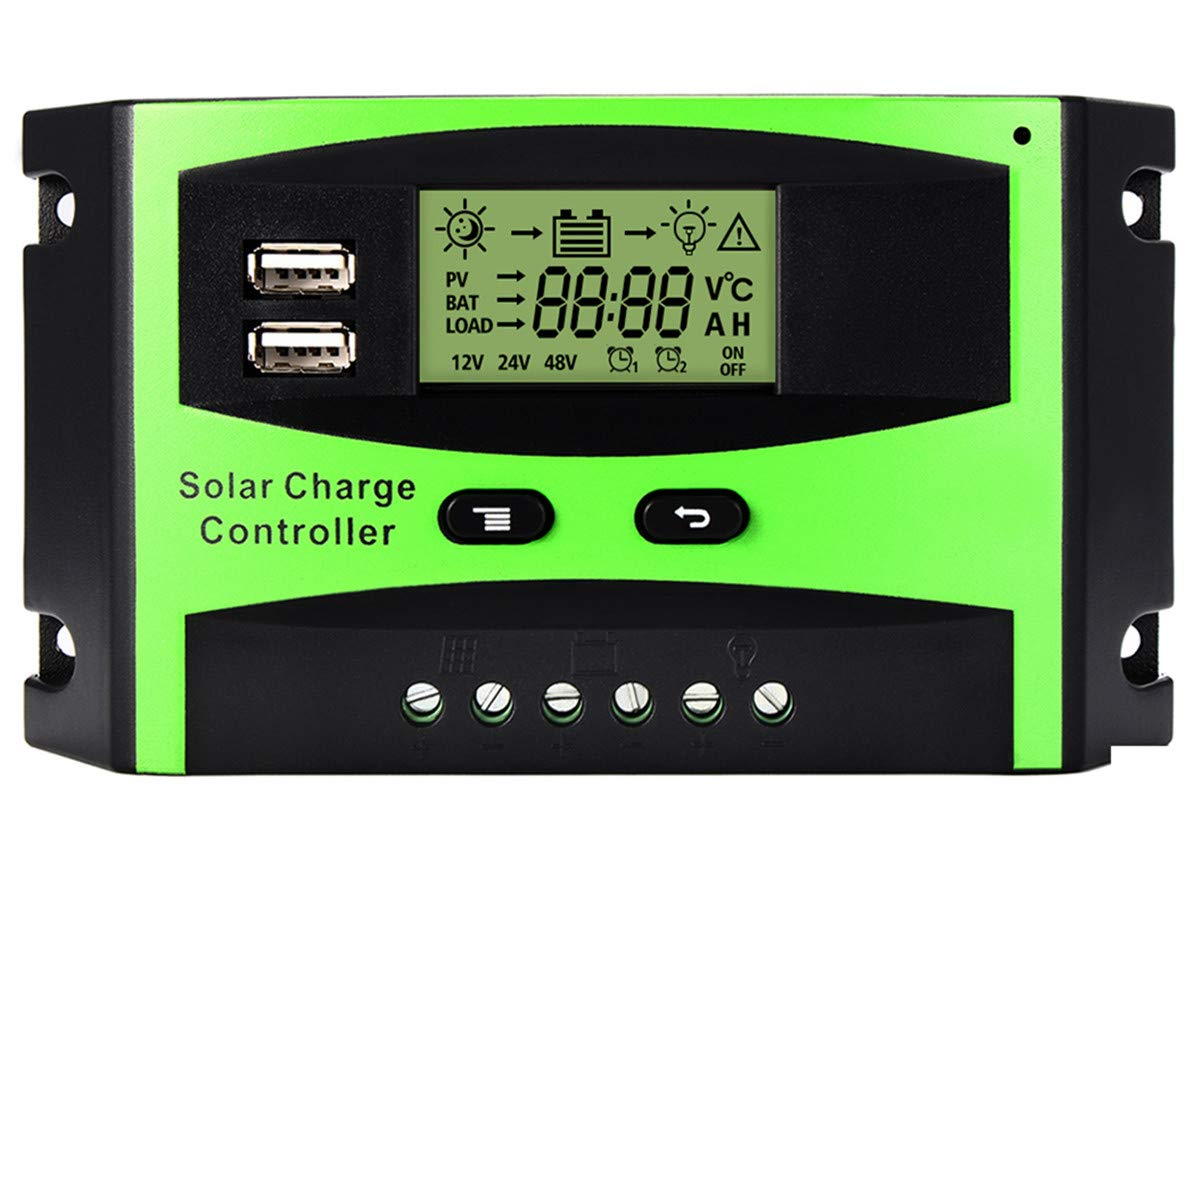 MOHOO 30A Solar Charge Controller Solar Panel Battery Intelligent Regulator with Dual USB Port PWM LCD Display 12V/24V